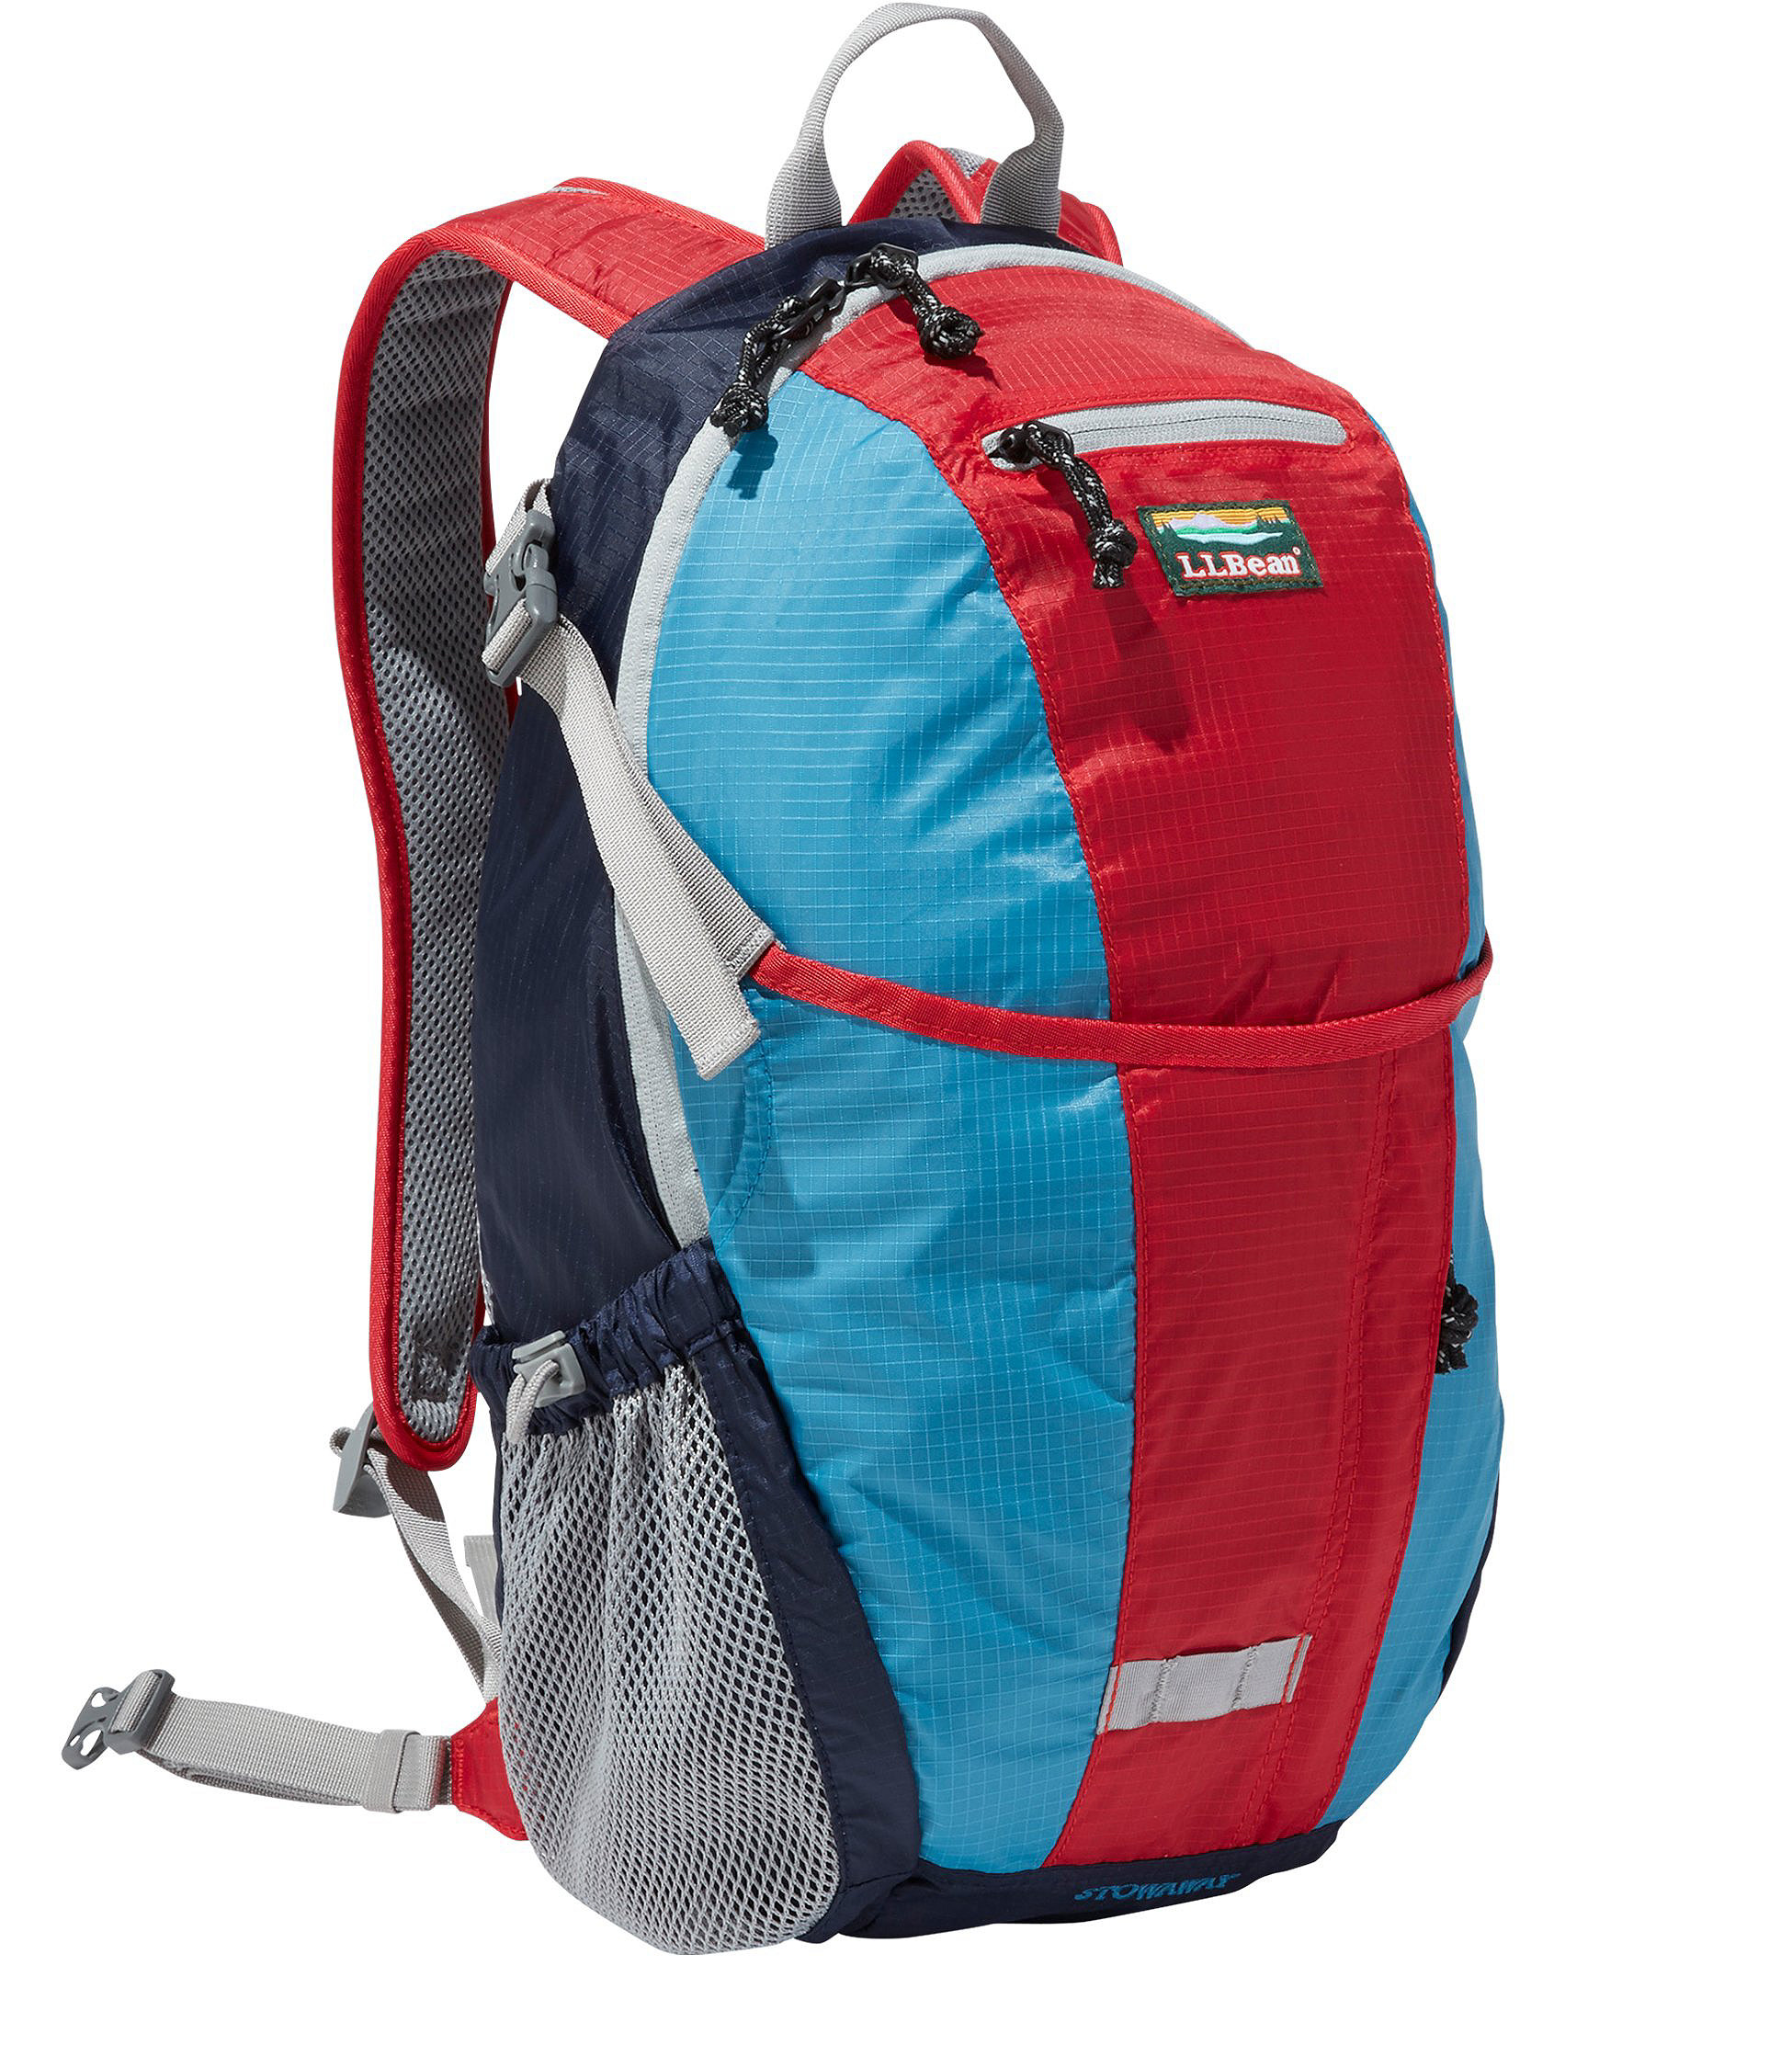 Stowaway Day Pack, Multi by L.L.Bean